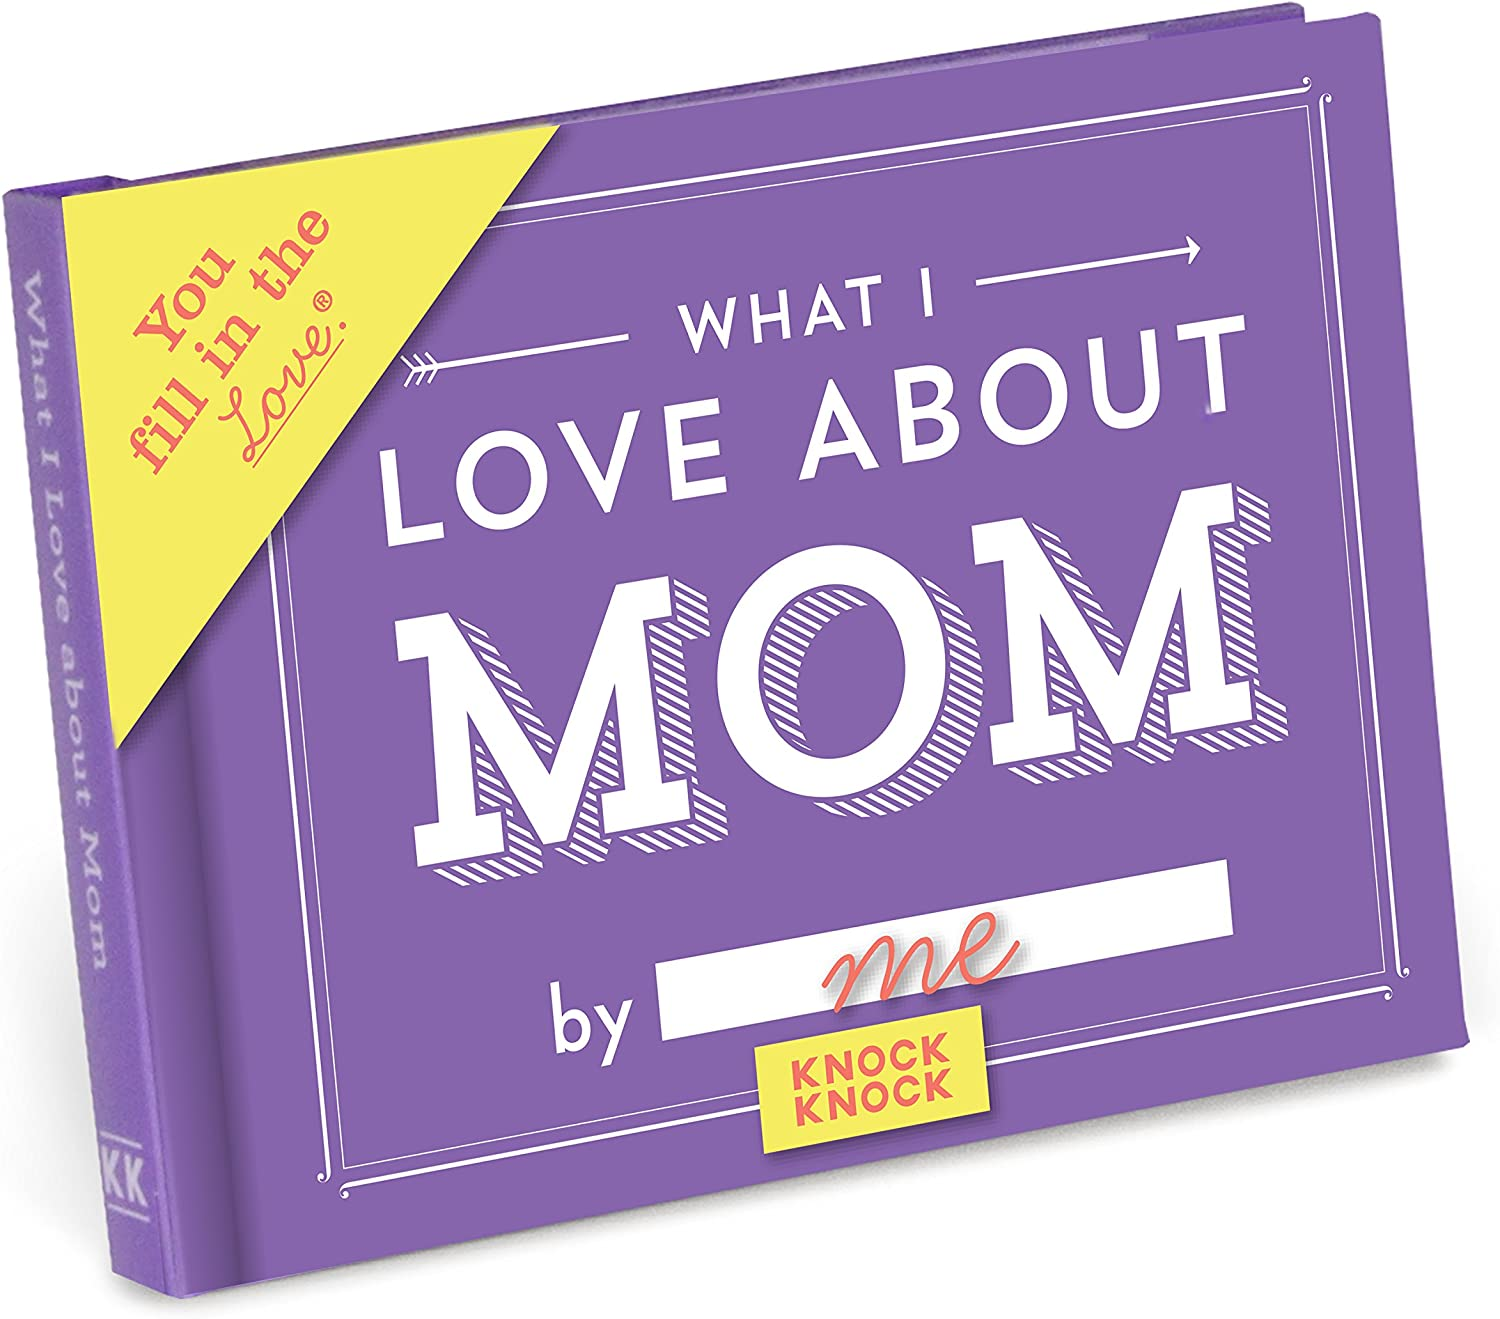 """Do you want a meaningful gift that your hands truly take part in making it? Then, this """"What I Love About Mom Book"""" is sure to be the best choice for you. This little book contains fill-in-the-blank lines to describe why your mom's the best. Pour love into each sentence and tell mom how she is always the best to you. I bet your mom will read it again and again and keep it as the most precious property. What could be more meaningful than this heartfelt Mother's day present?"""